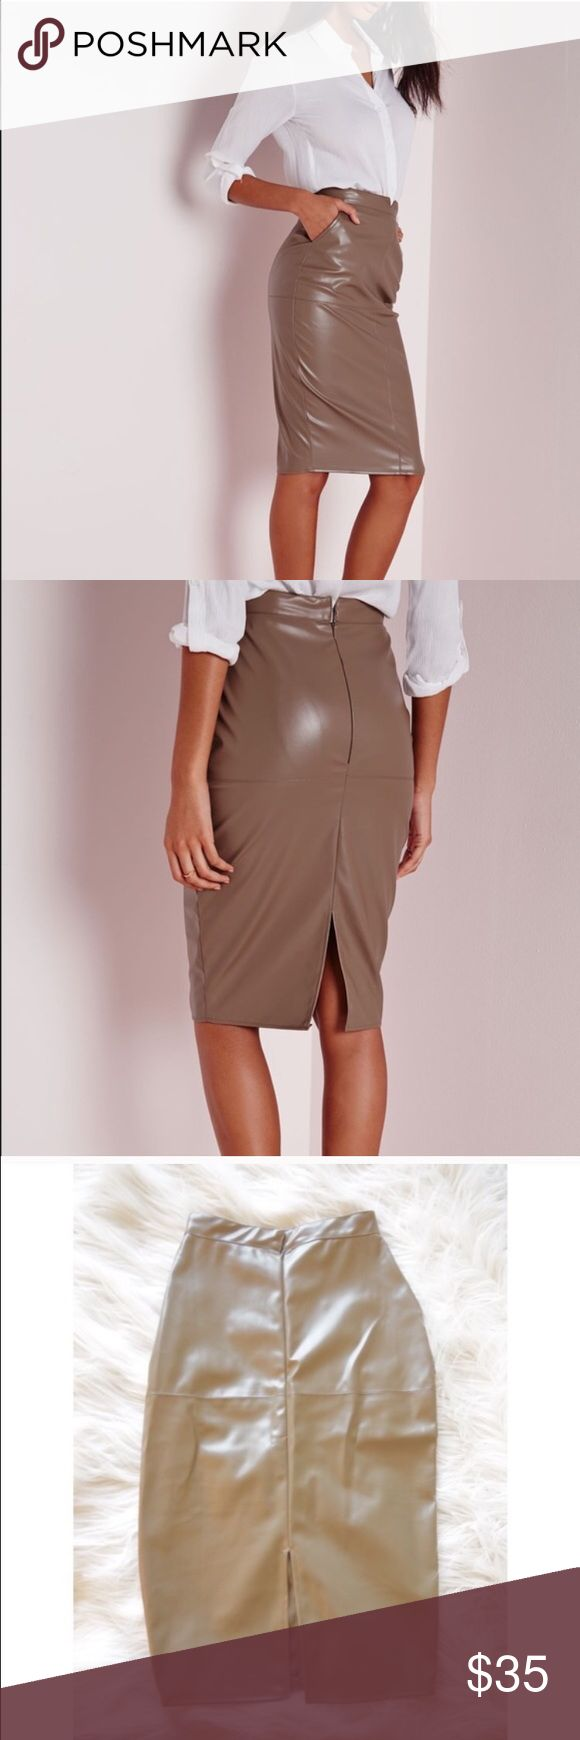 NWOT faux leather midi skirt Perfect condition. I am a size 26 and it's just too small on my waist. PRICE IS FIRM. bundle for discount. Cheaper on Ⓜ️ Missguided Skirts Midi